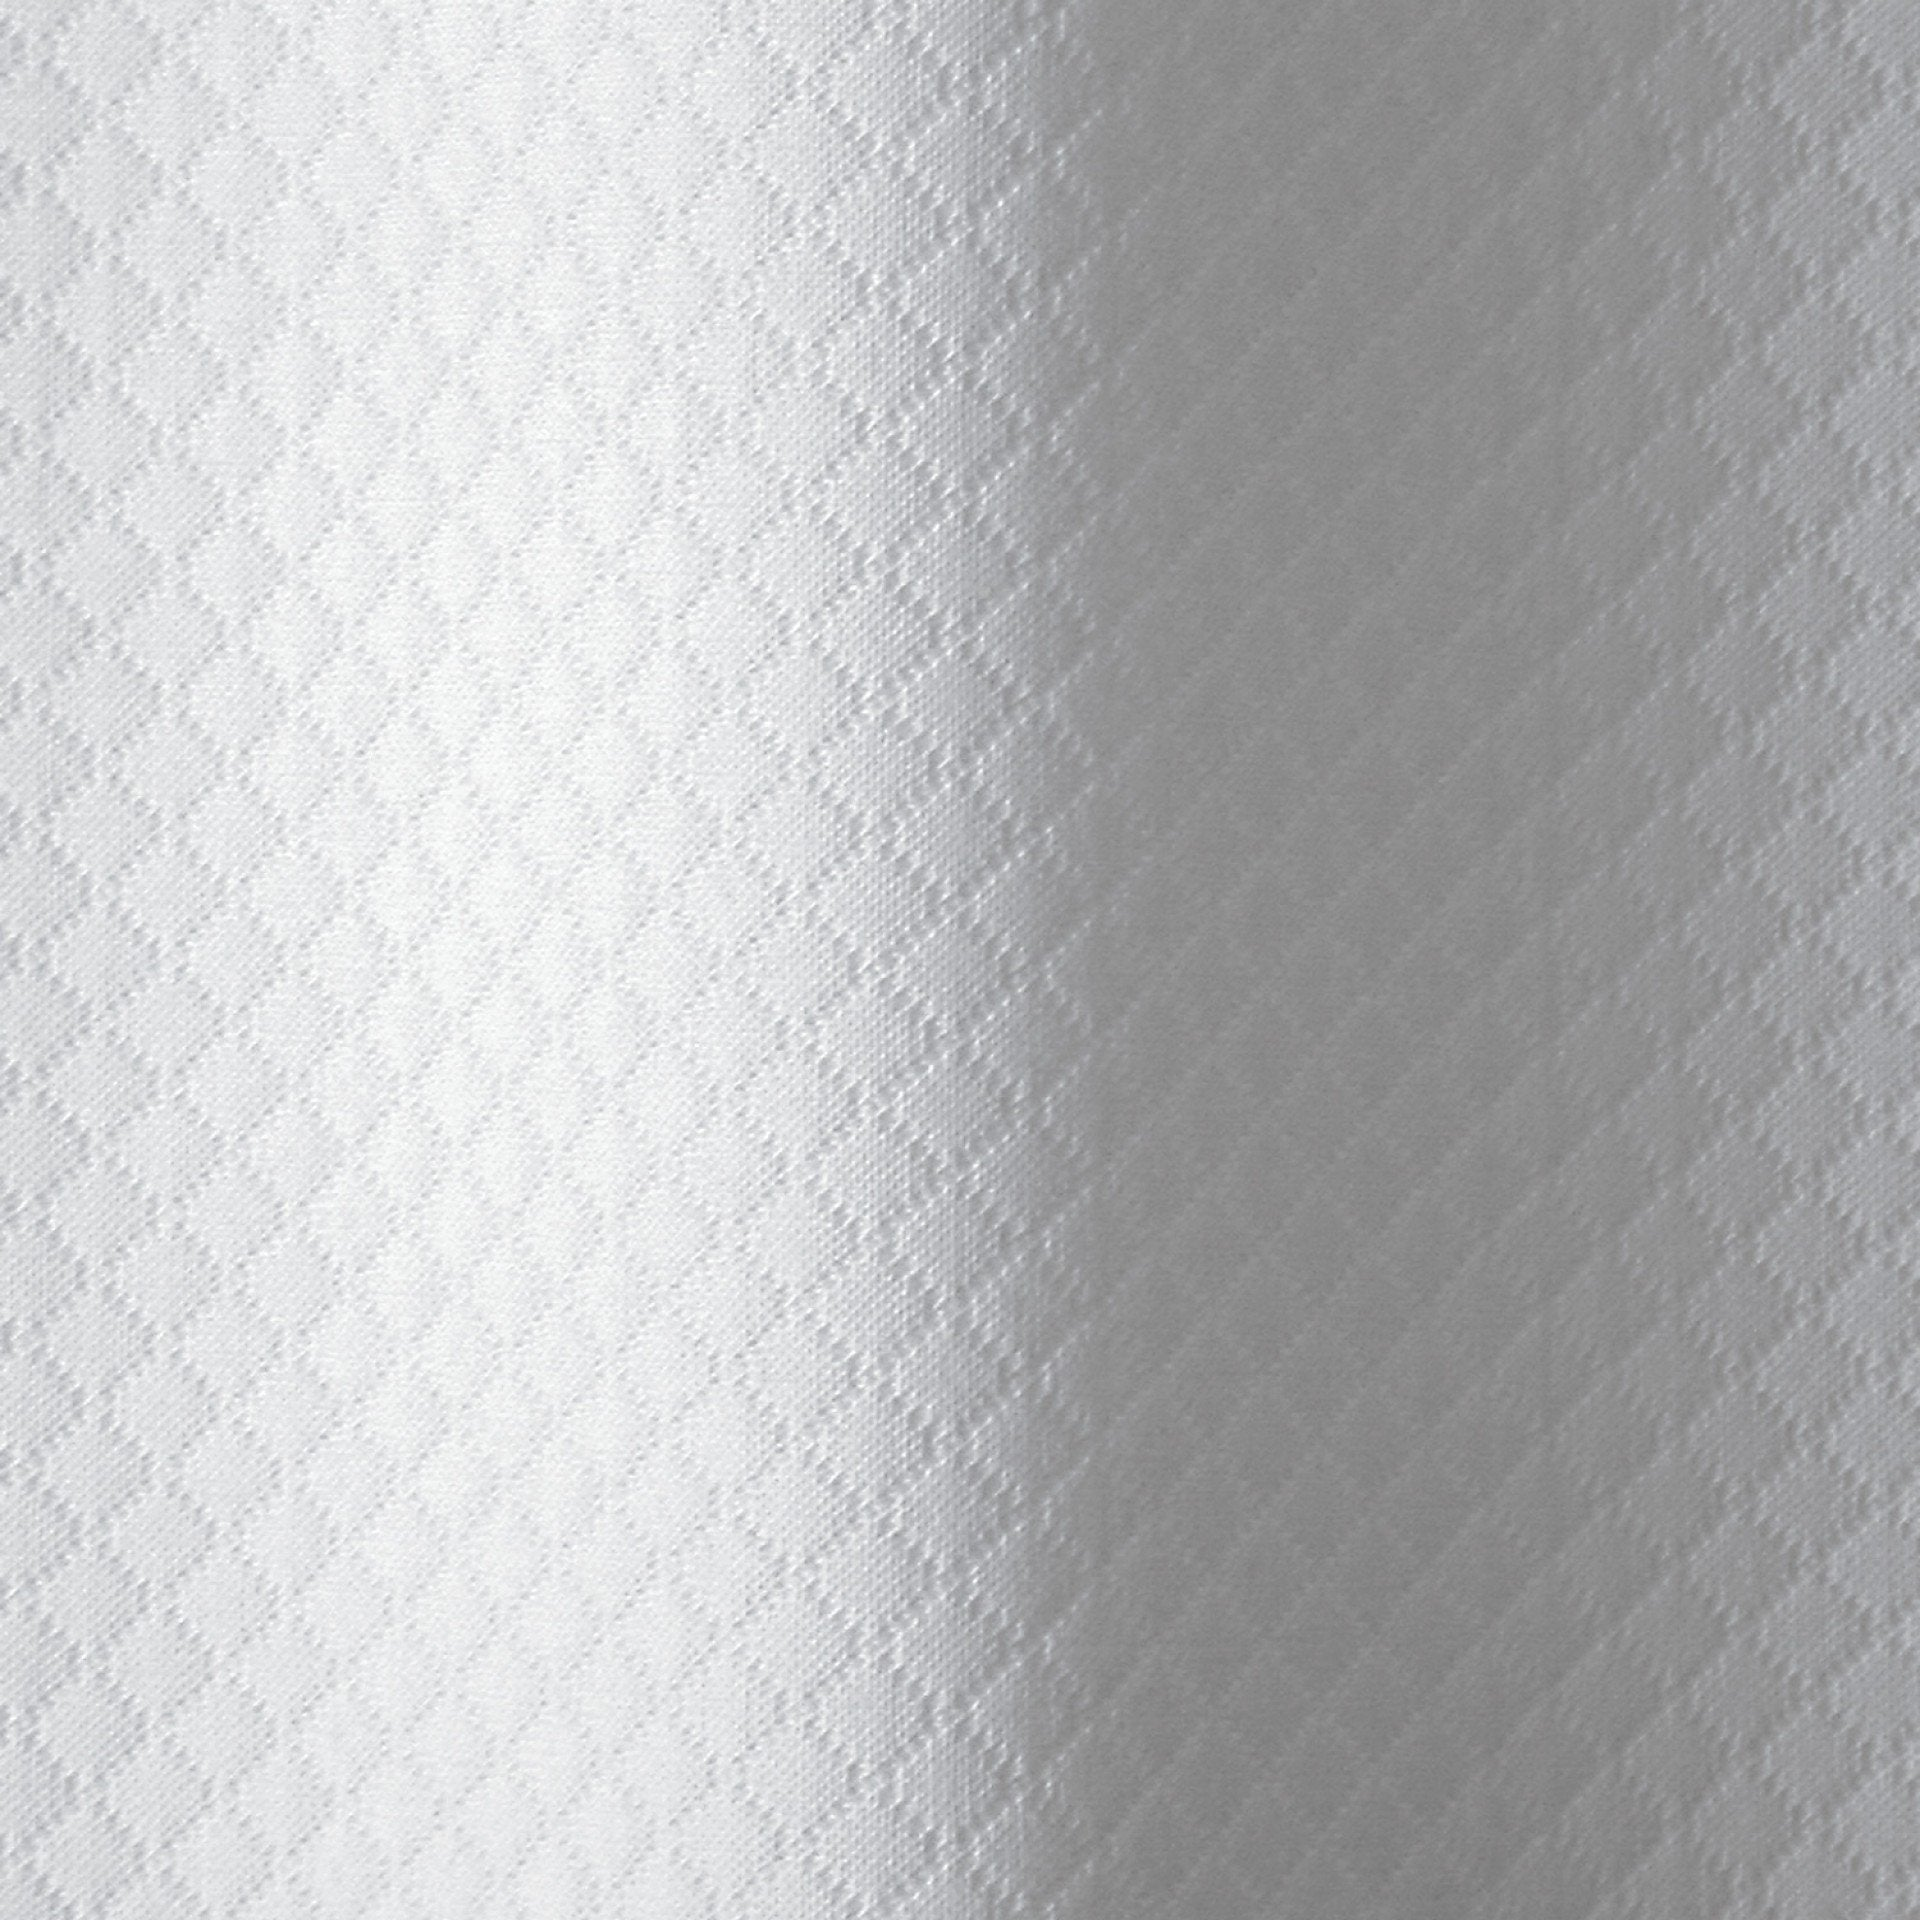 Diamond Pique by Matouk - White shower curtain - Fig Linens